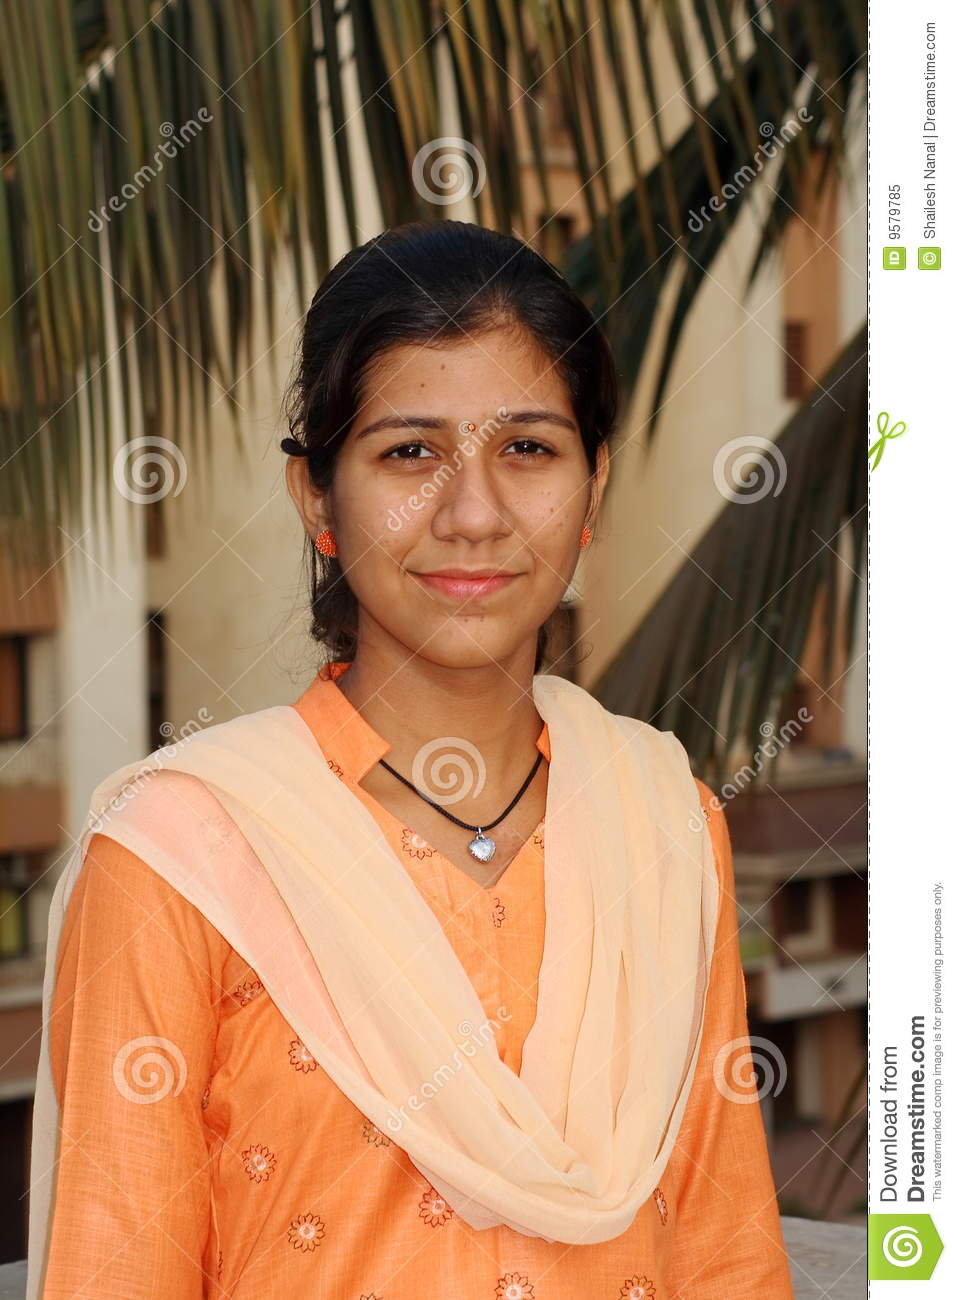 Simple Indian girl stock image. Image of bright, woman - 9579785